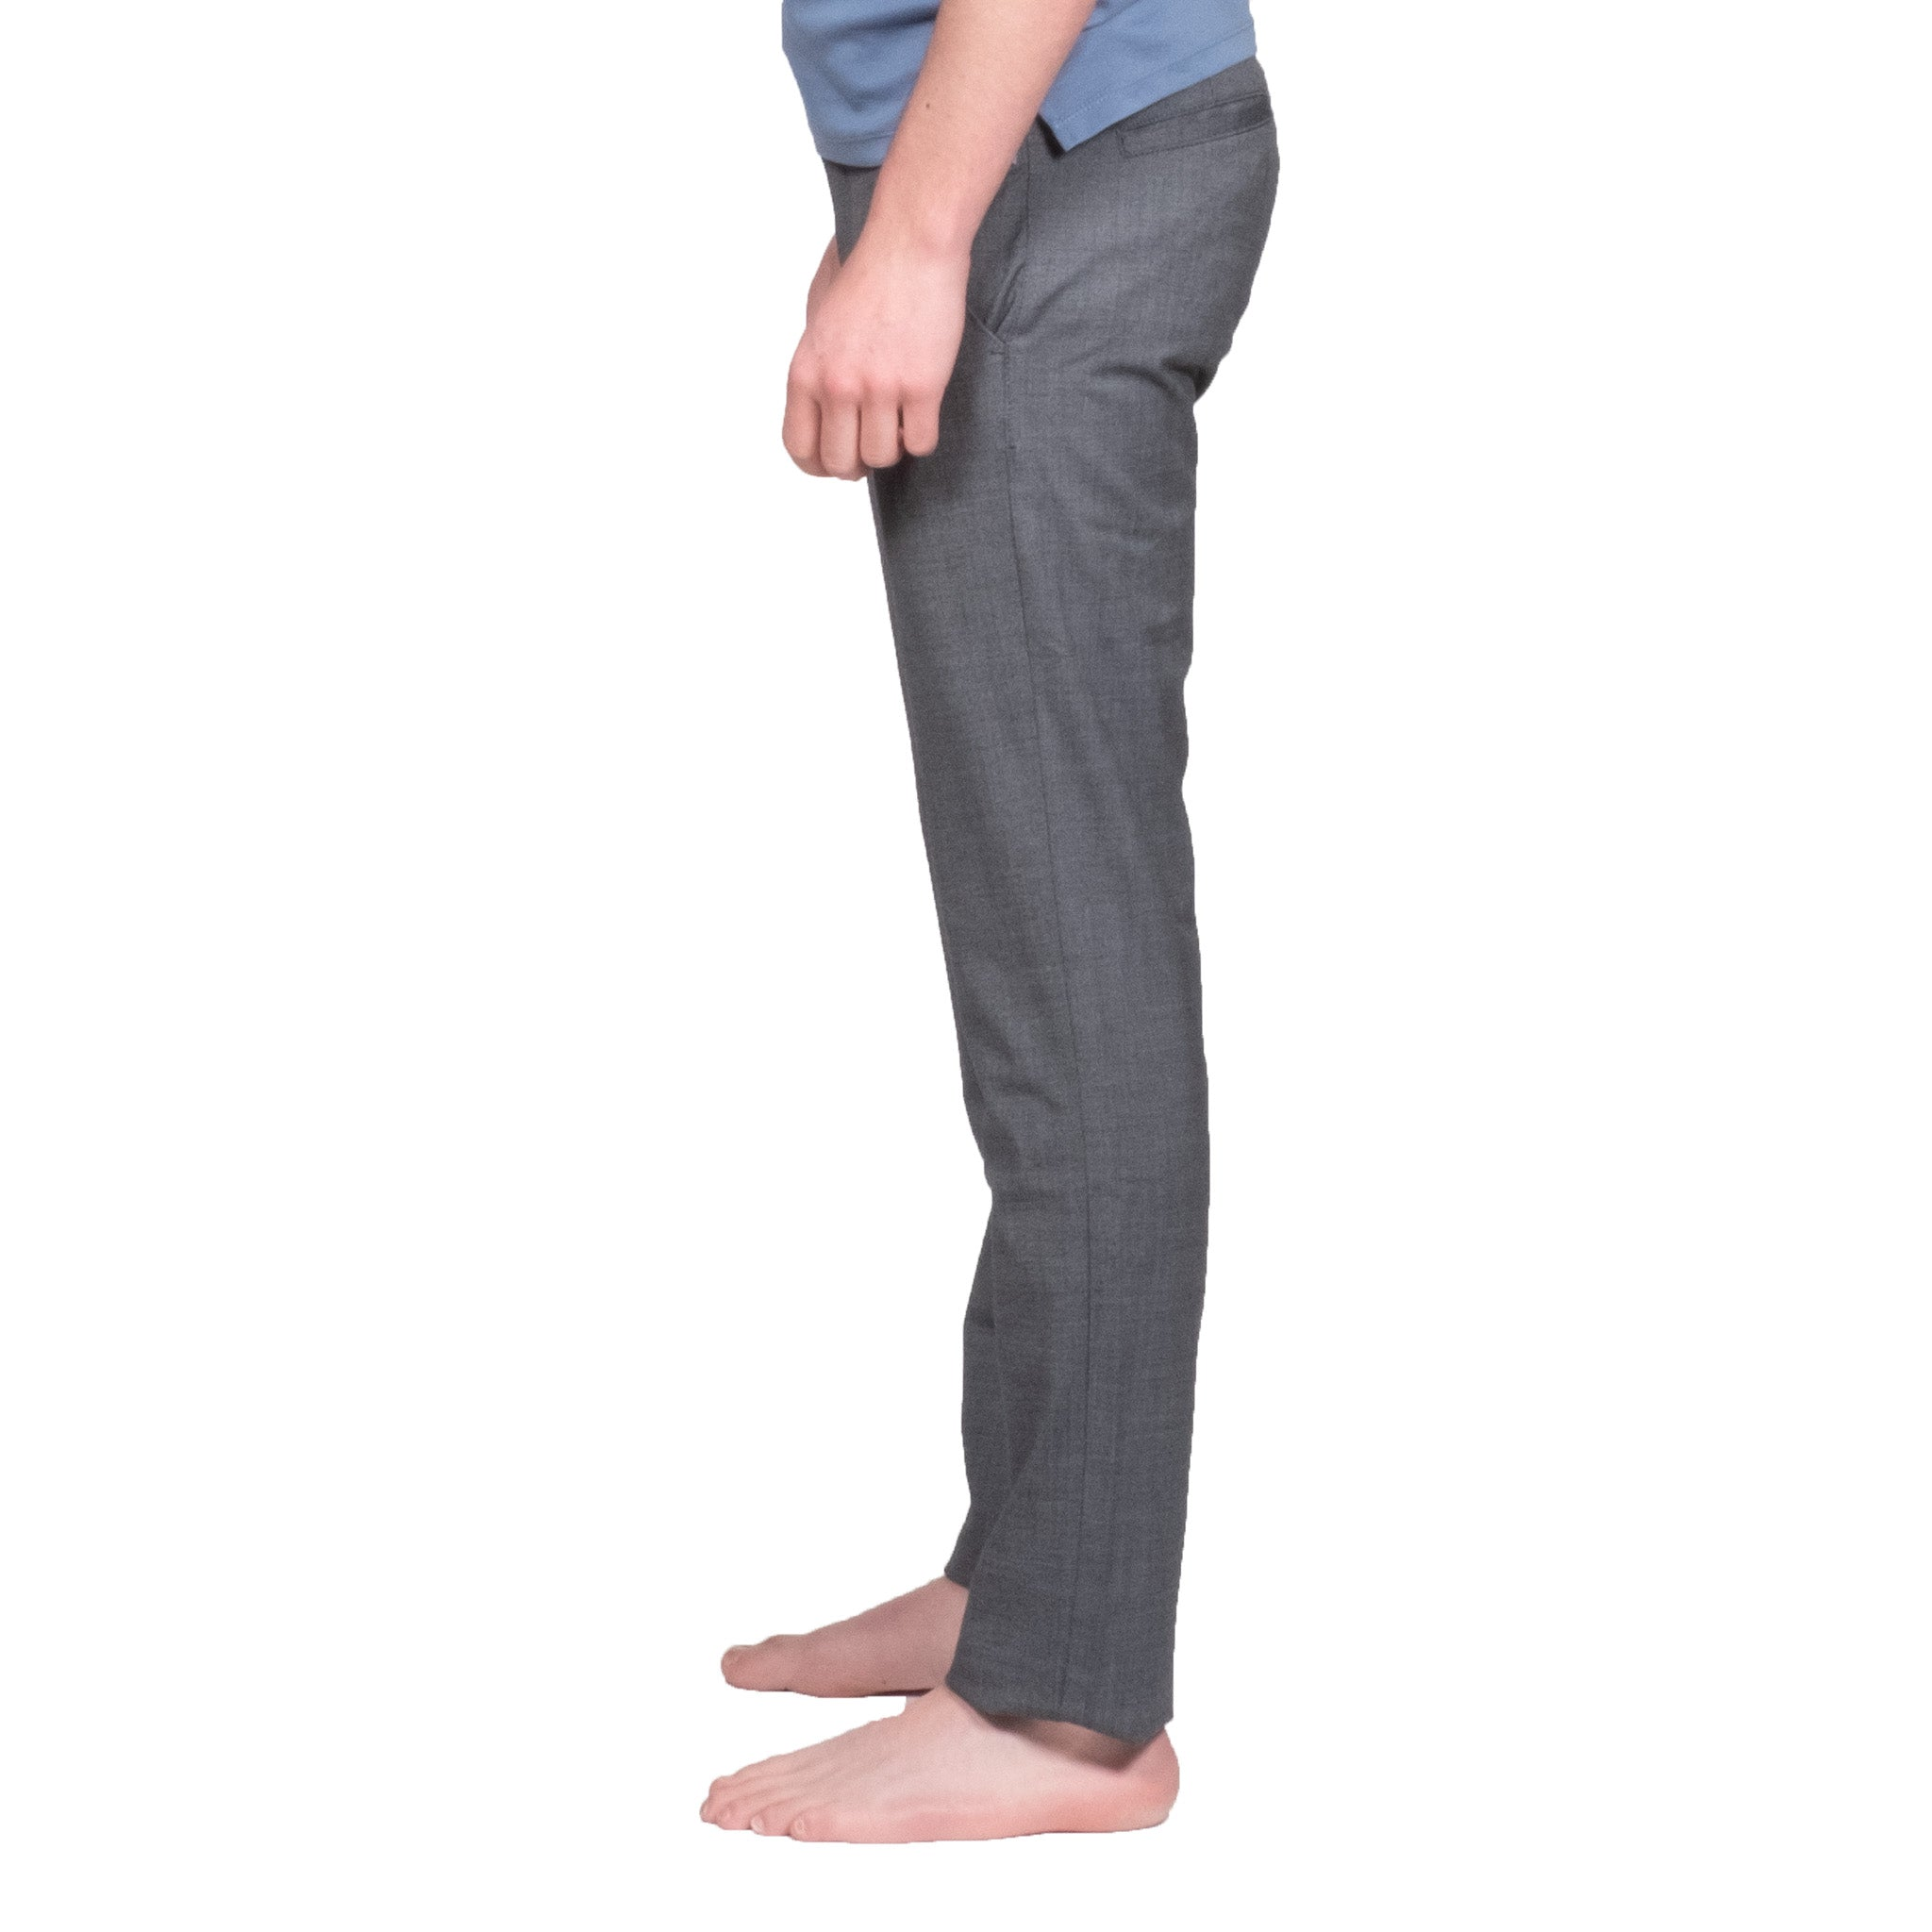 Verona Blue Chinos - Mr. Derk Apparel Ltd.